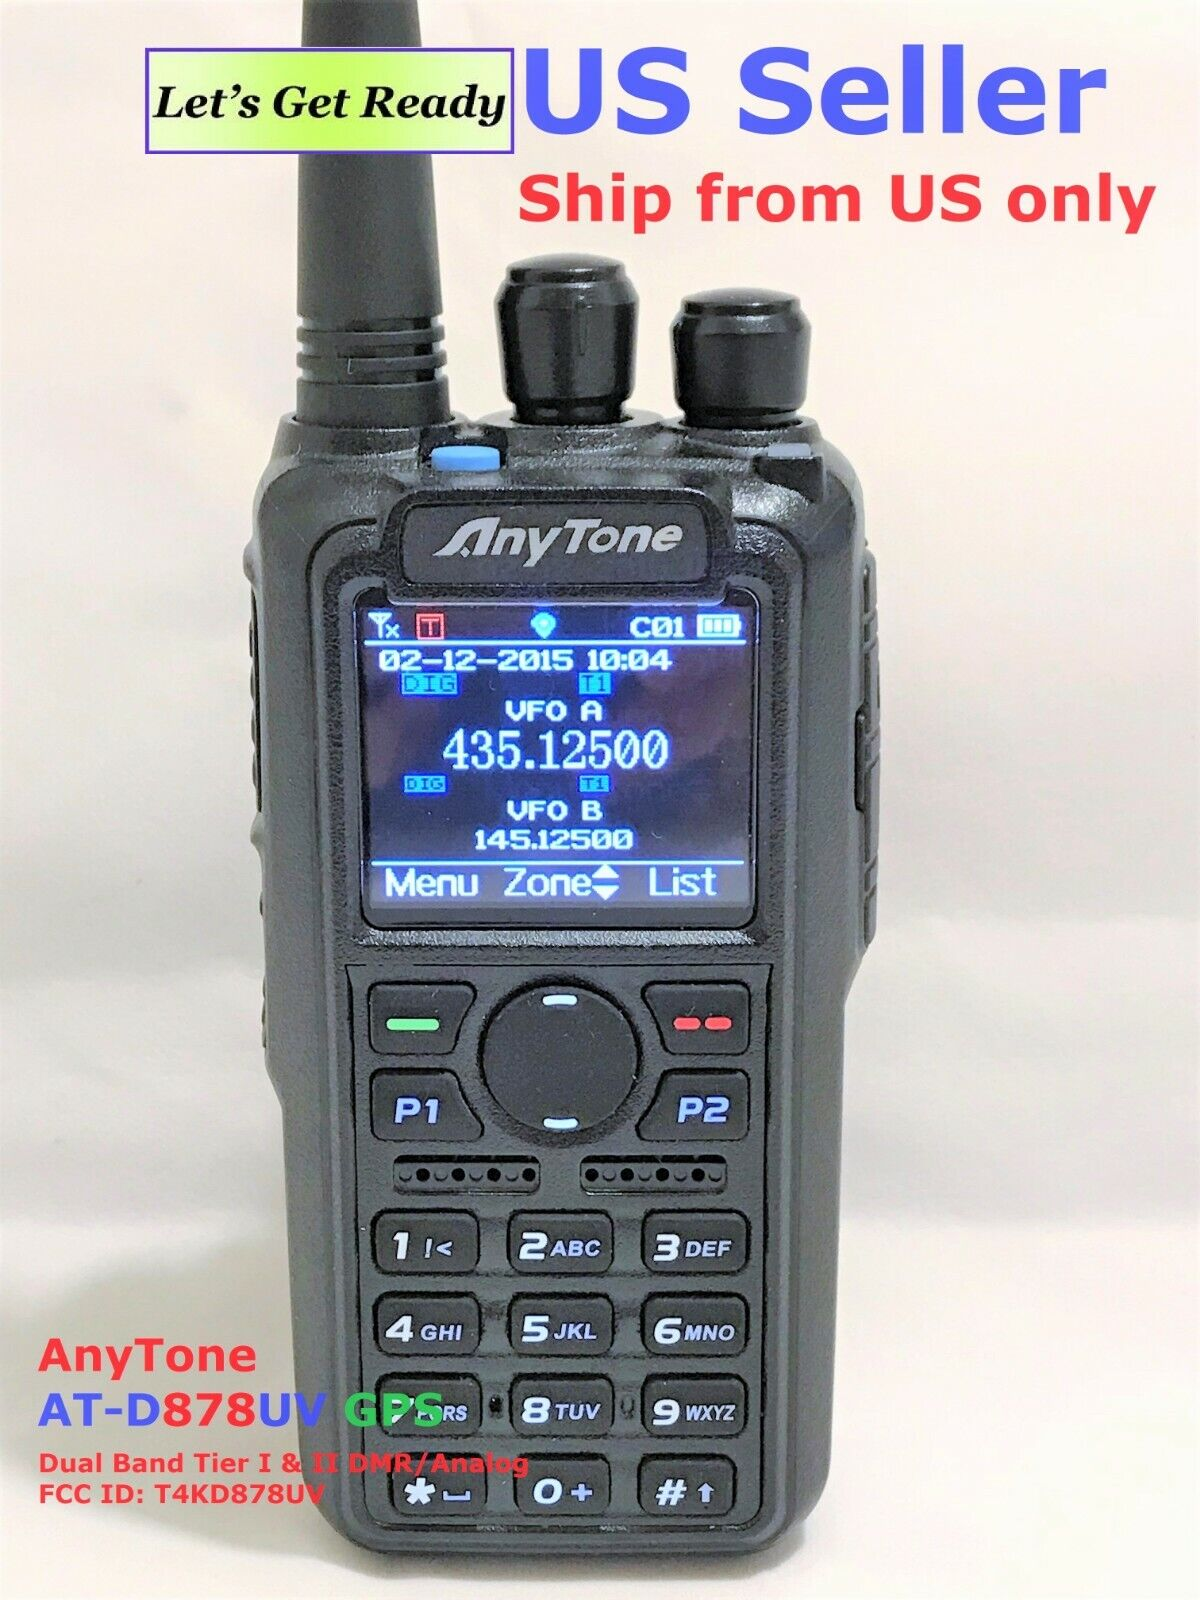 AnyTone AT-D878UV GPS Dual Band DMR/Analog radio with 3100 mAh battery US seller. Buy it now for 209.00